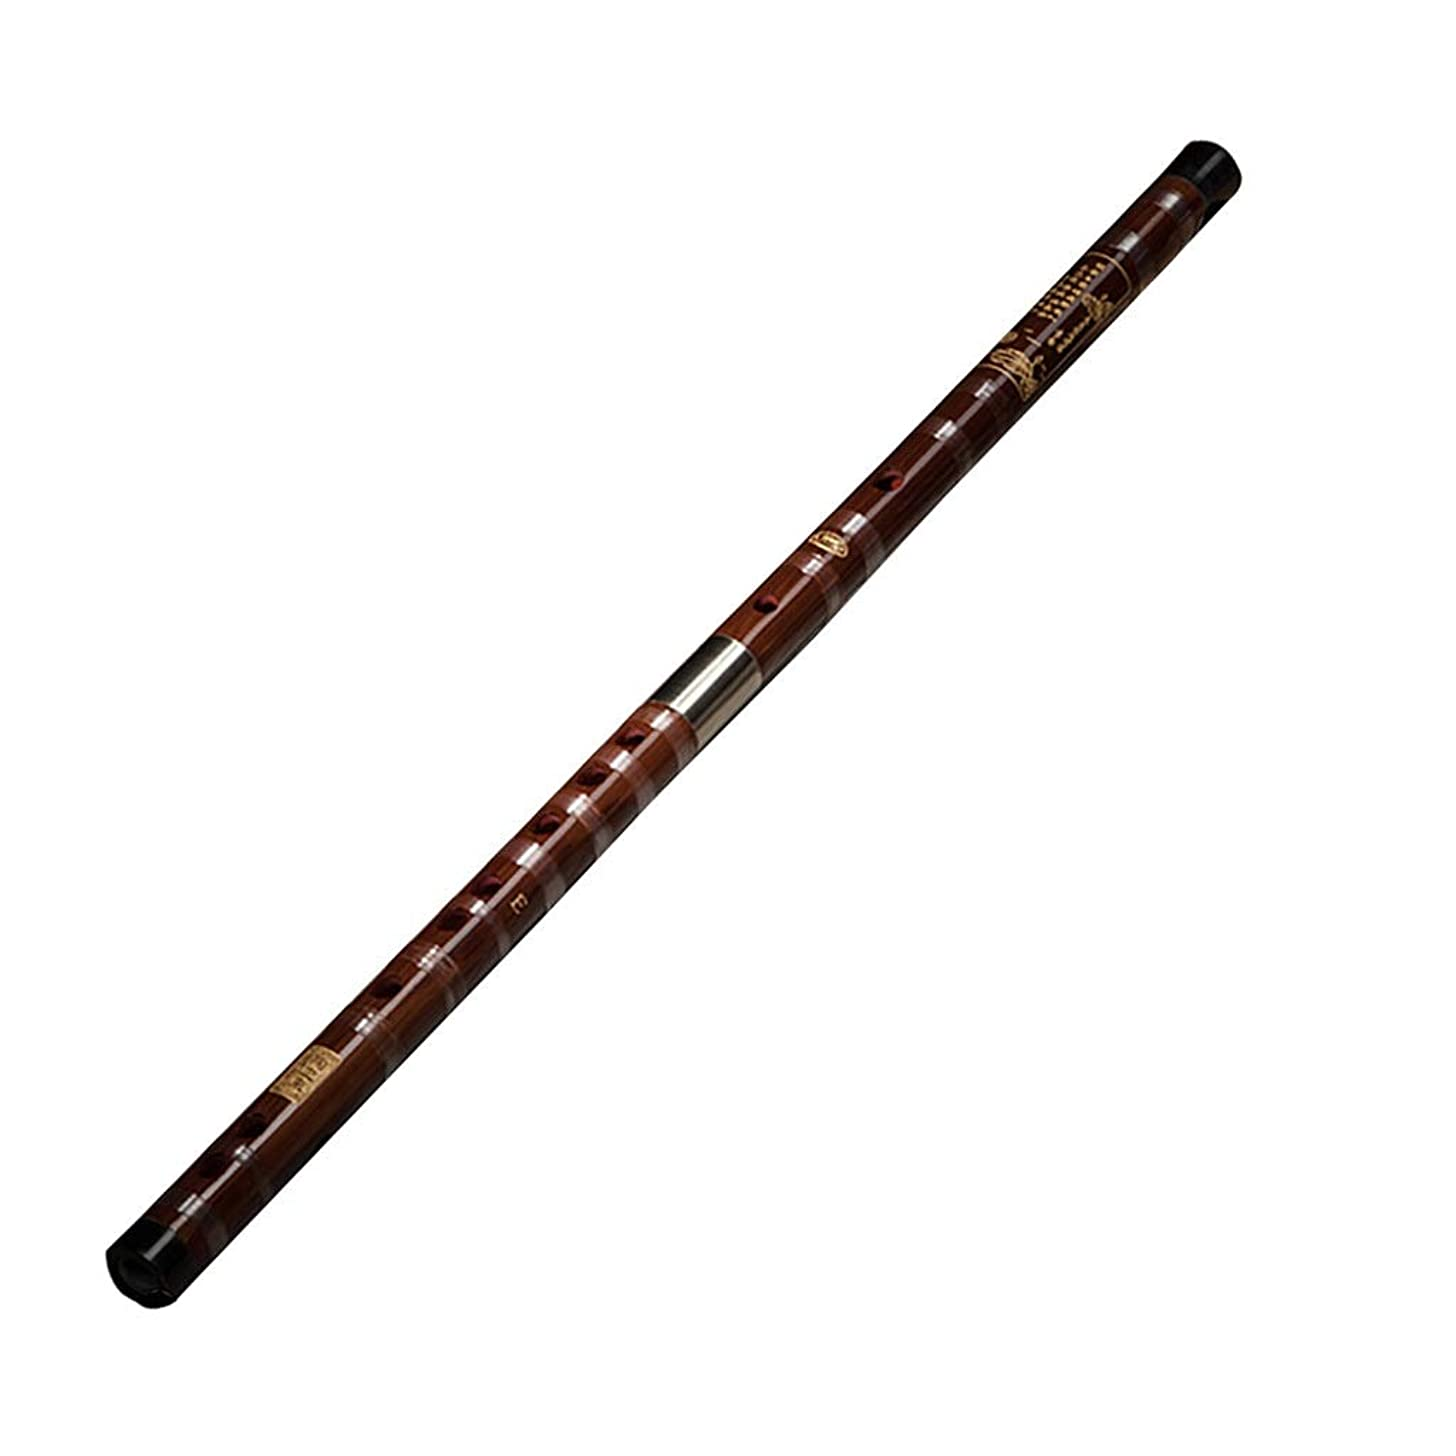 Bamboo flute Musical Instrument Flute Gift Beginners Flute Professional Solo Performance Flute CDEFG Five Tones Fife (Color : Red, Size : F key532.22.2cm)